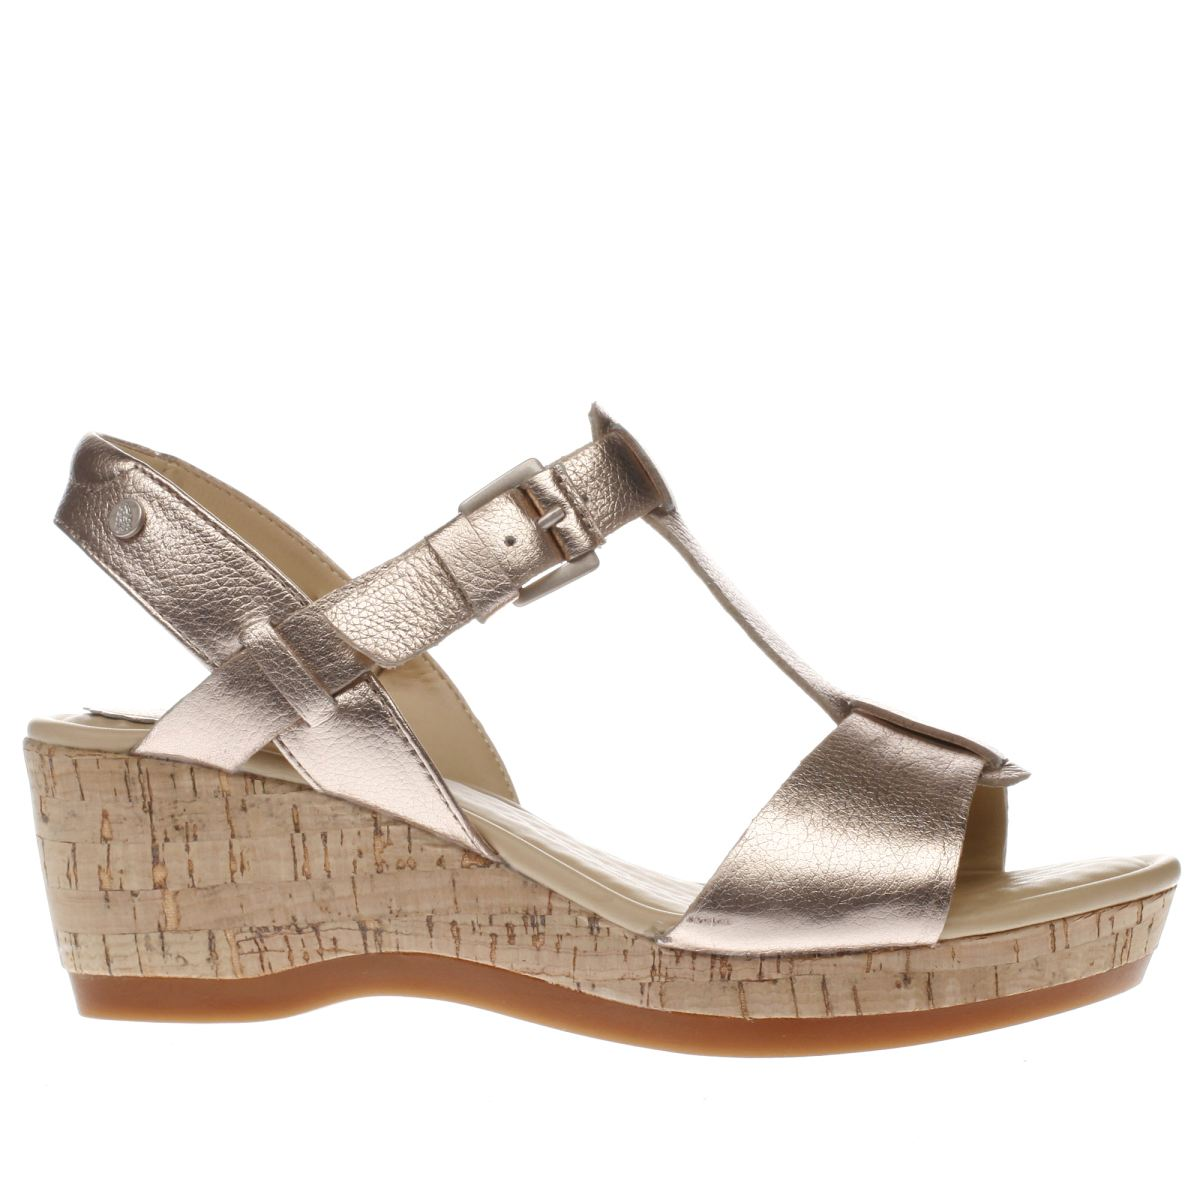 hush puppies gold penelope farris sandals